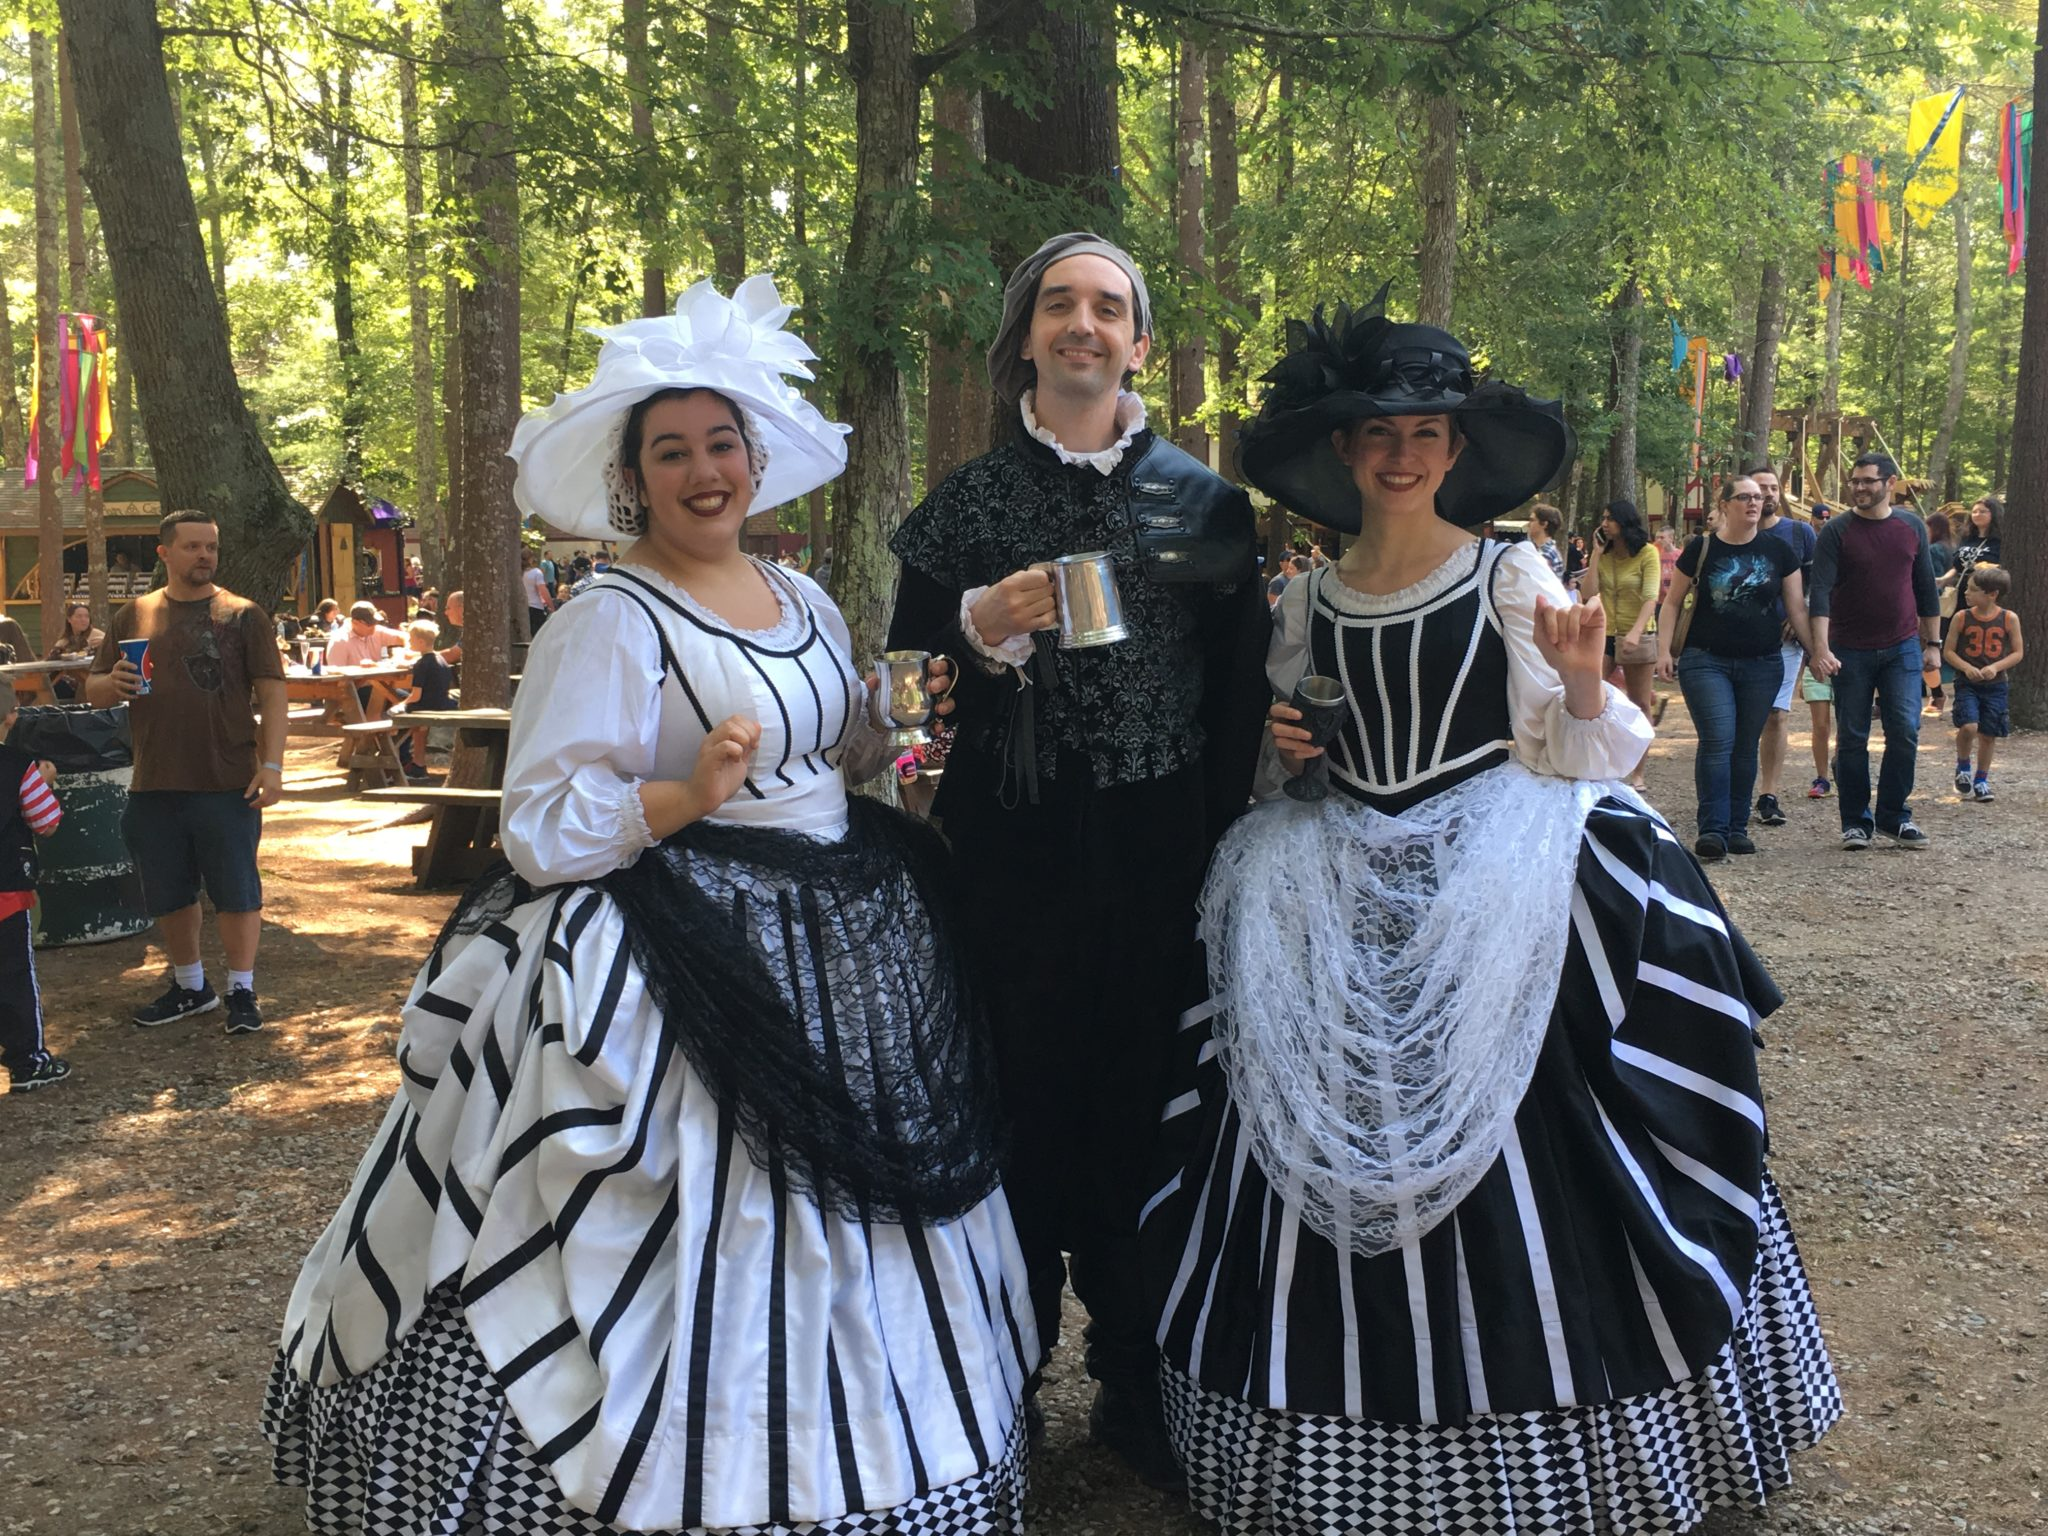 There is tons of cosplay at King Richard's Faire!